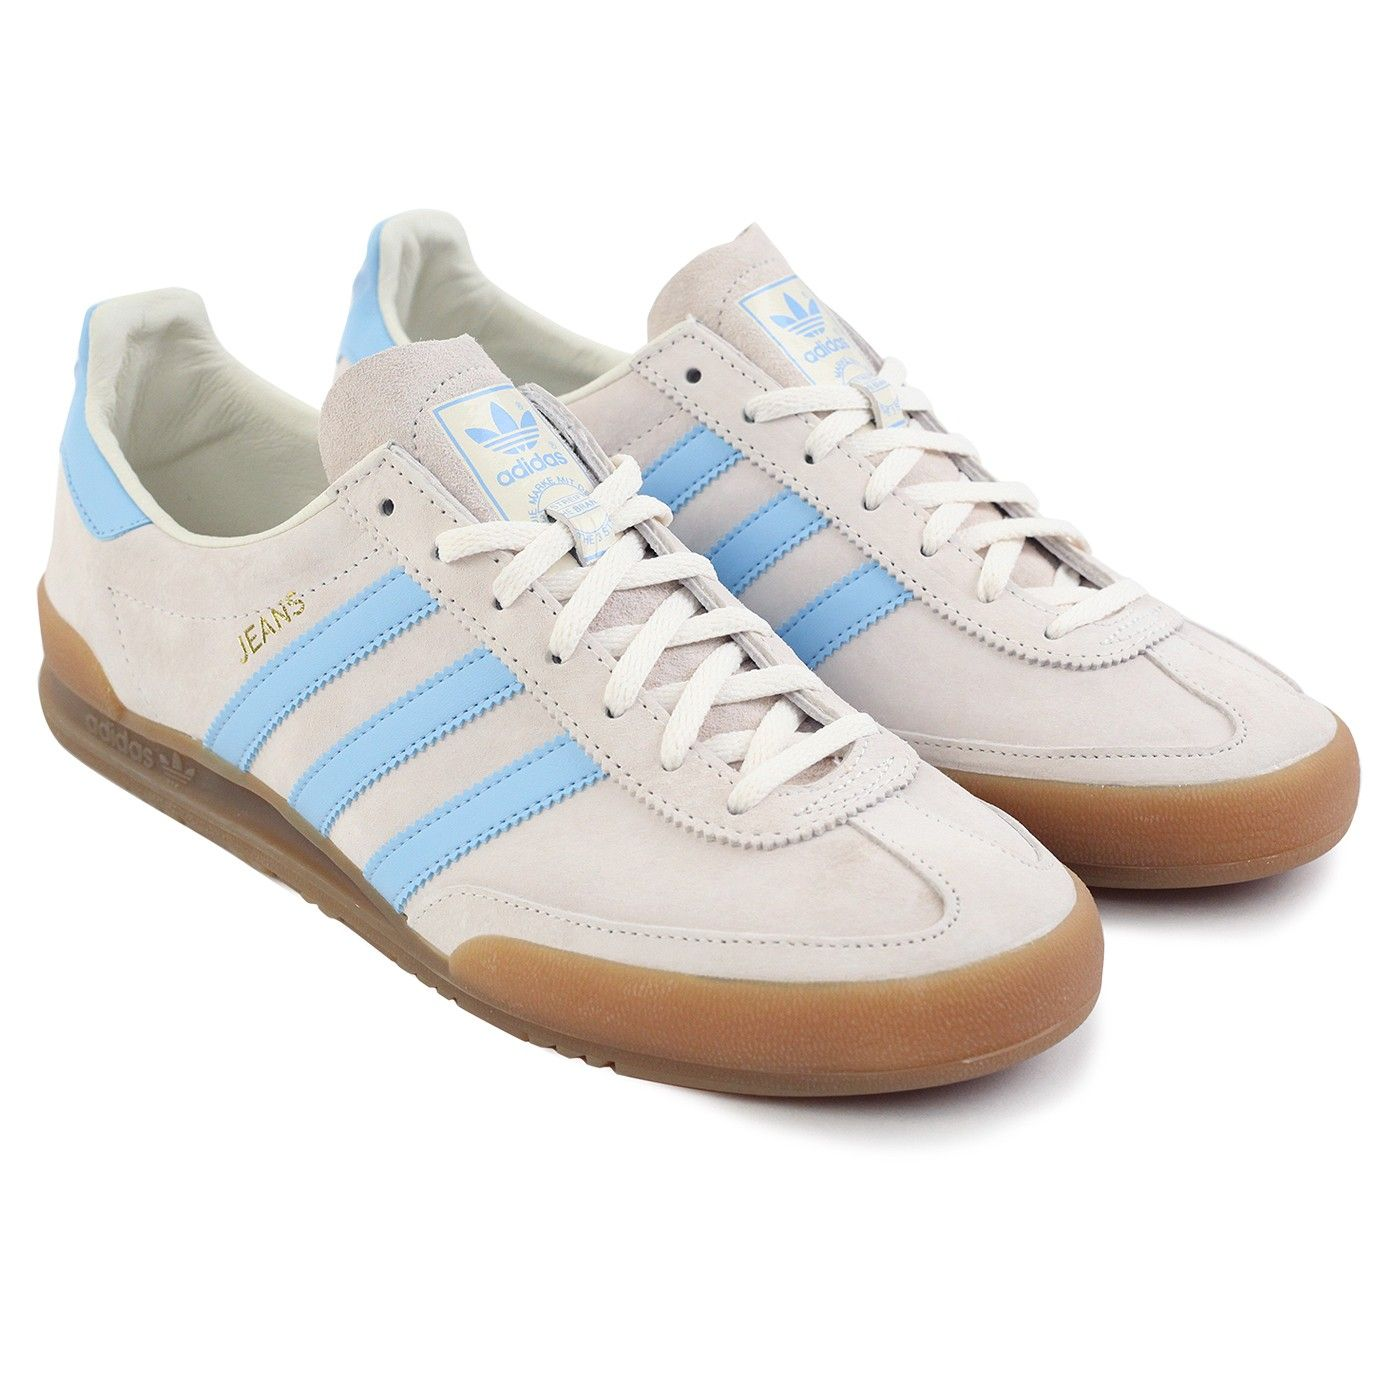 Jeans Shoes in Chalk White Clear Sky Gum by Adidas